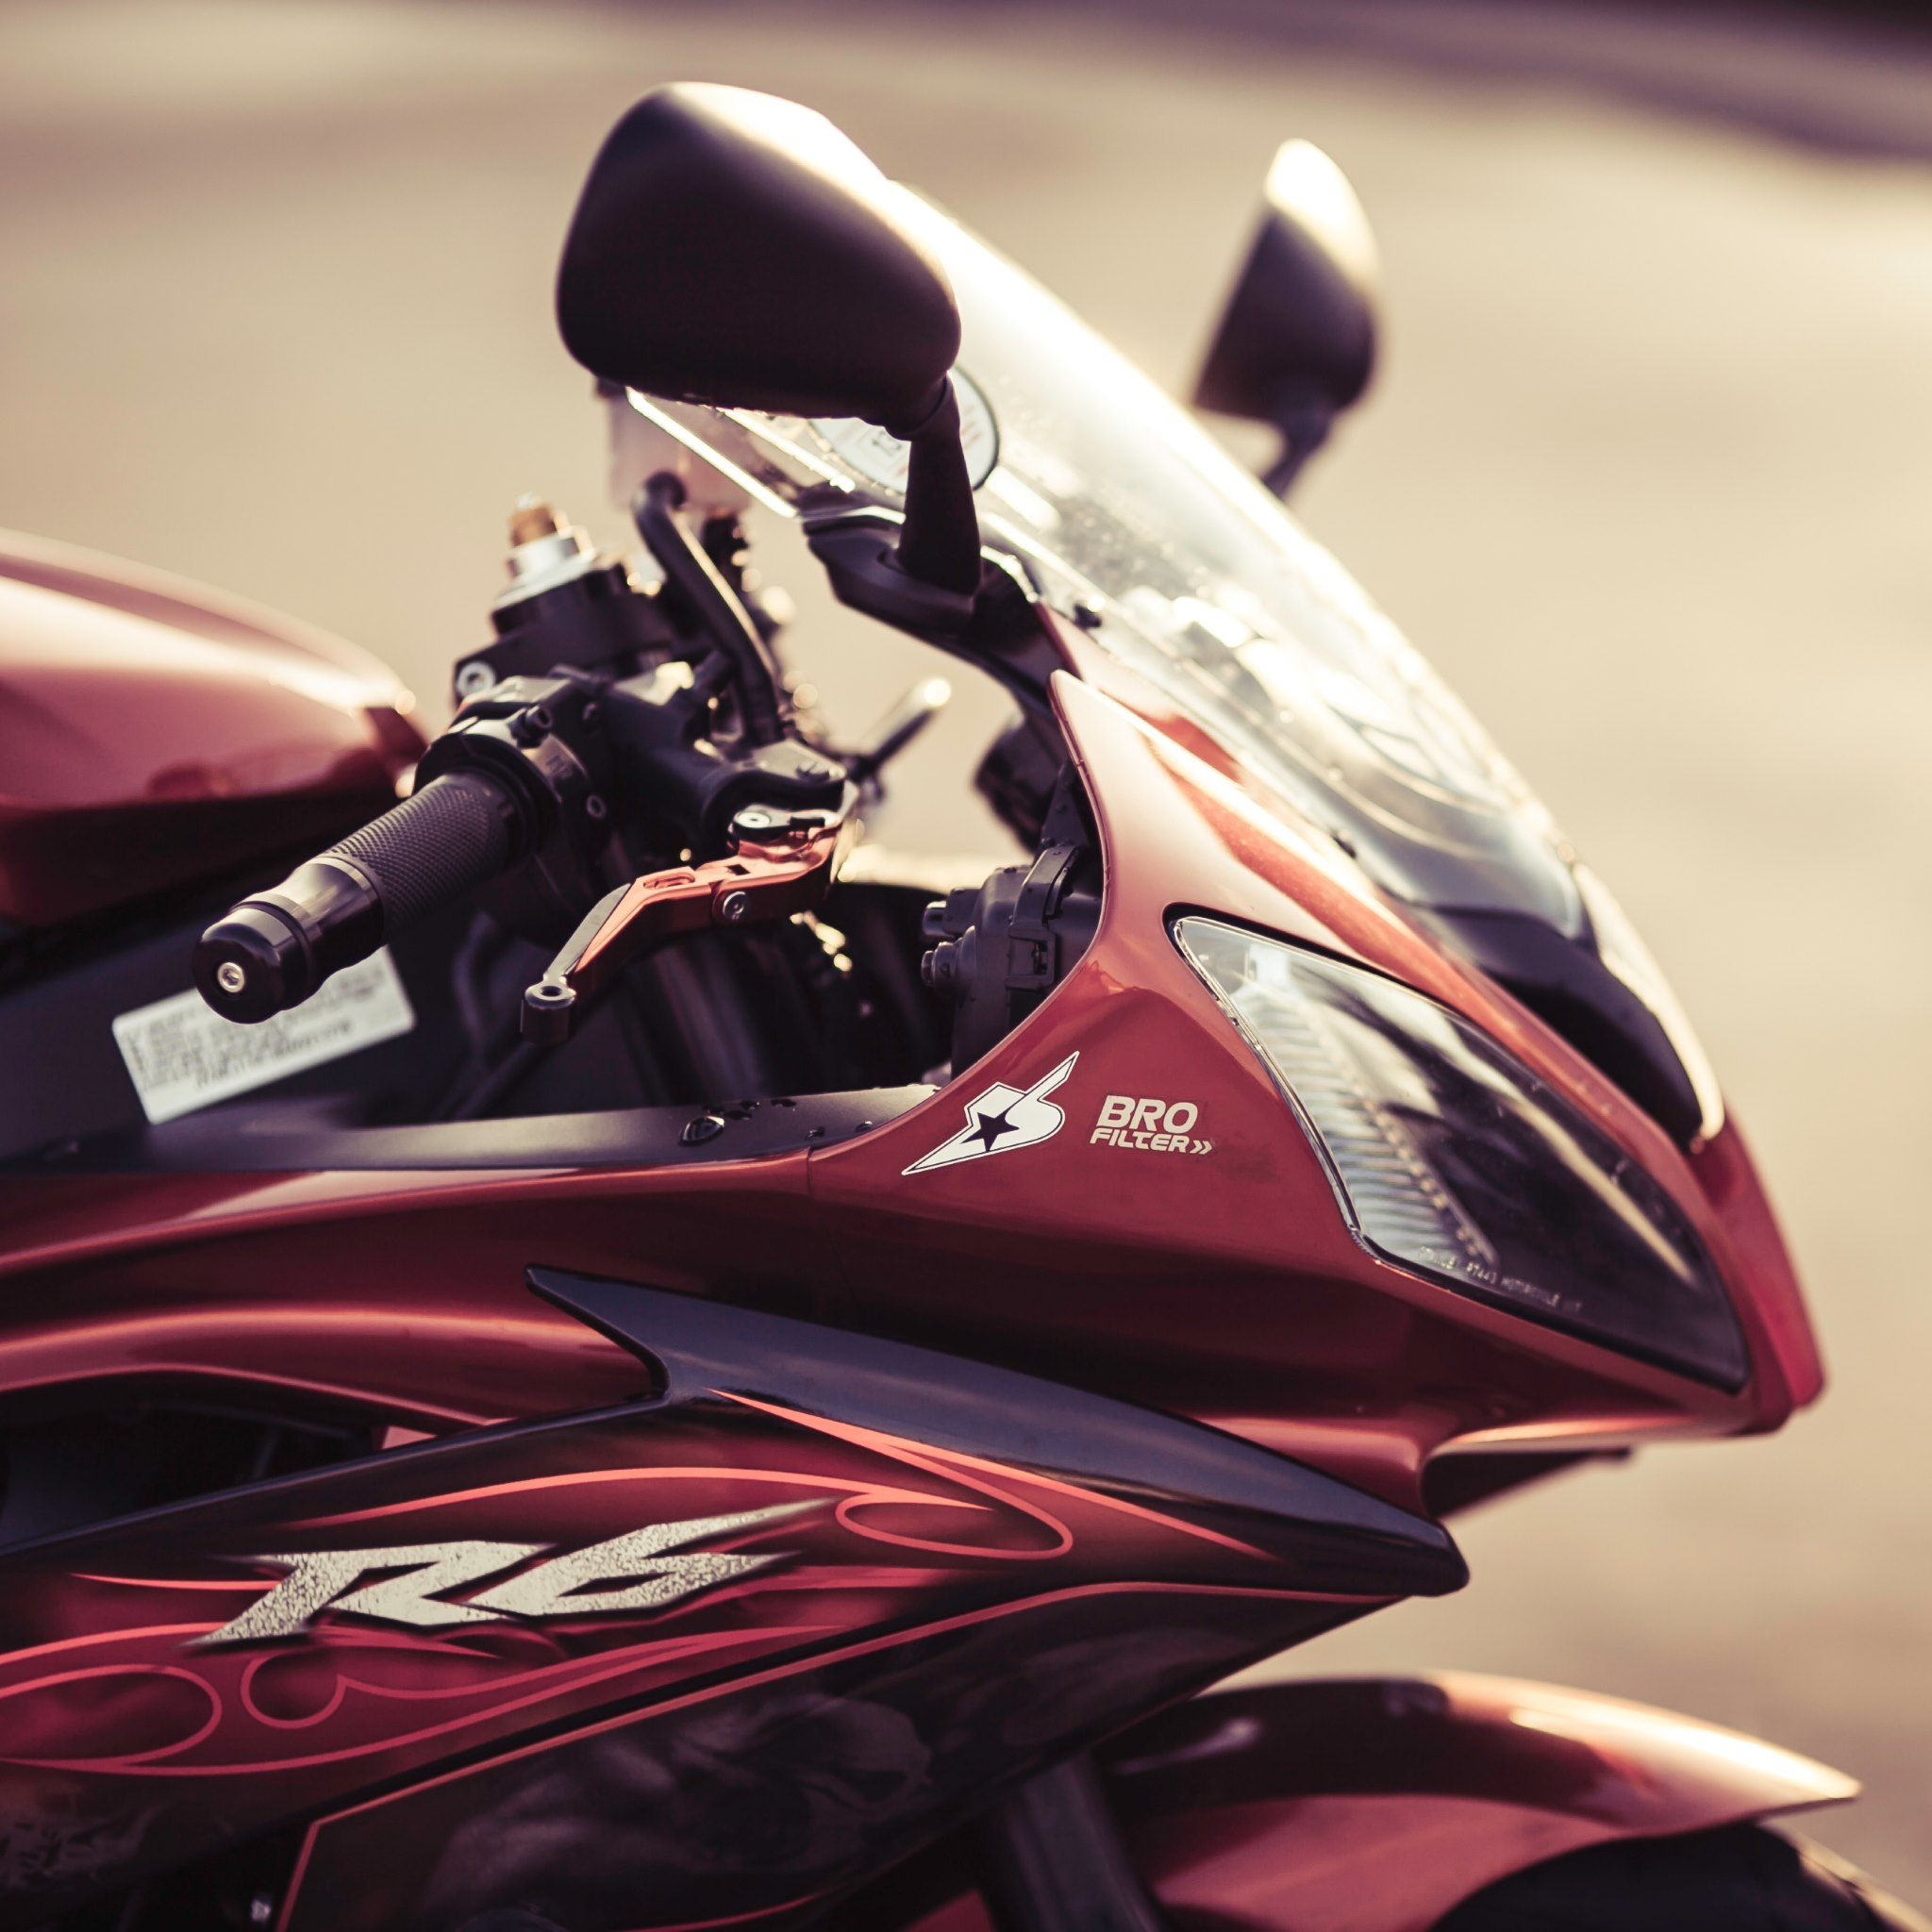 Yamaha R6 Motorcycle #wallpapers #image #pictures #photos